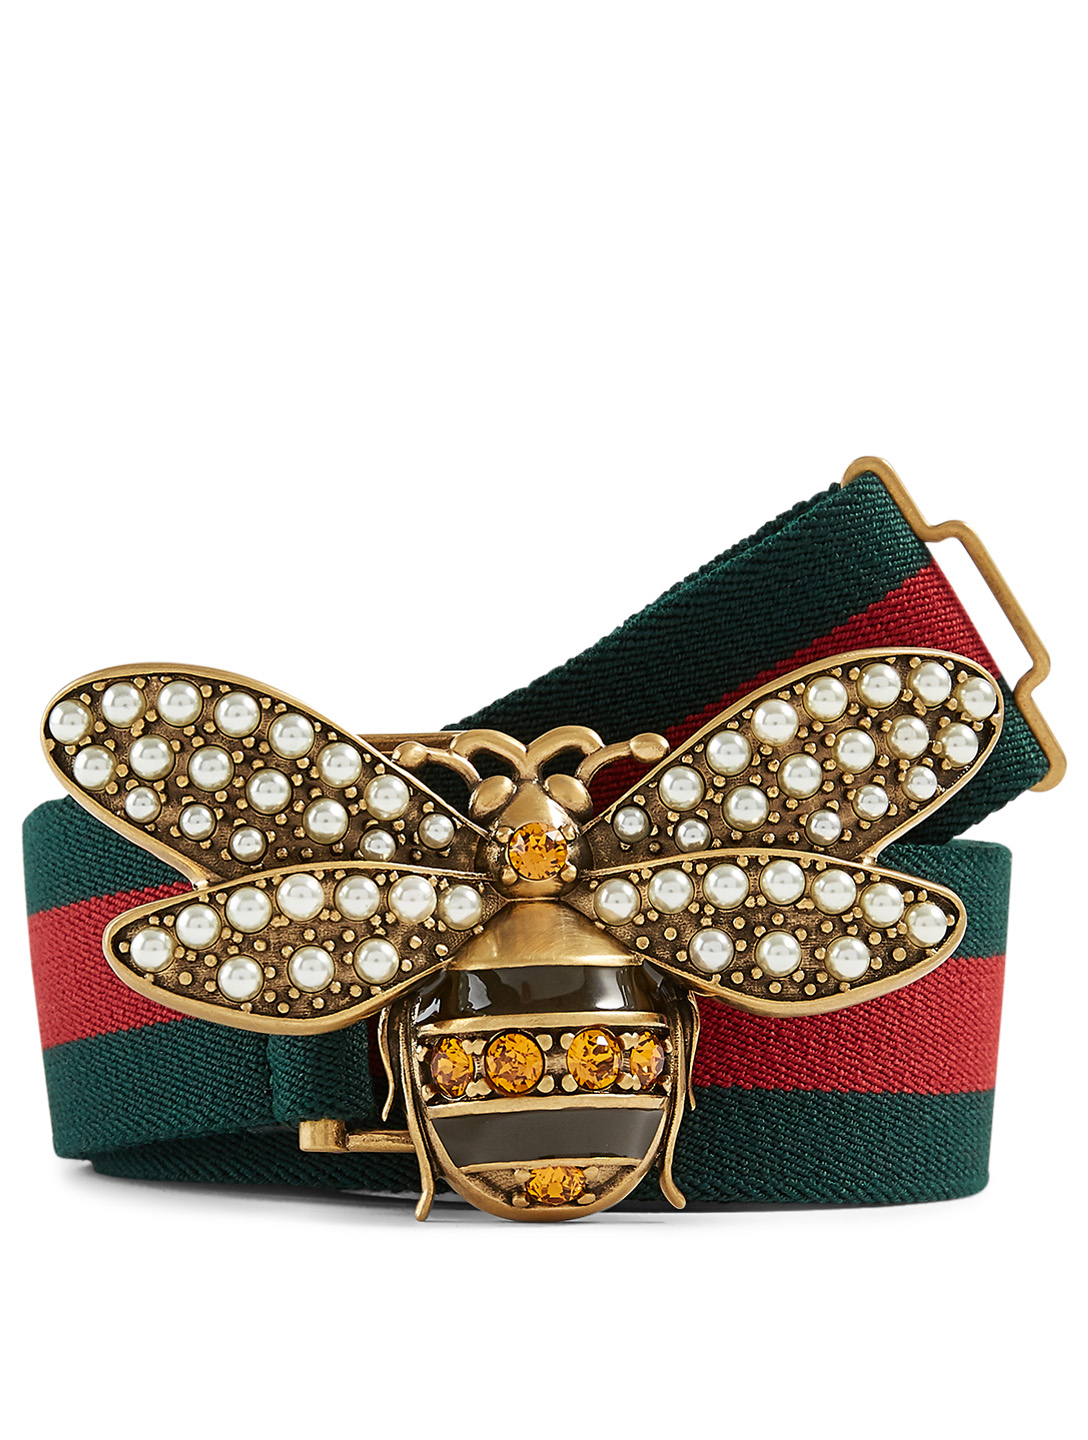 GUCCI Queen Margaret Web Belt Women's Green